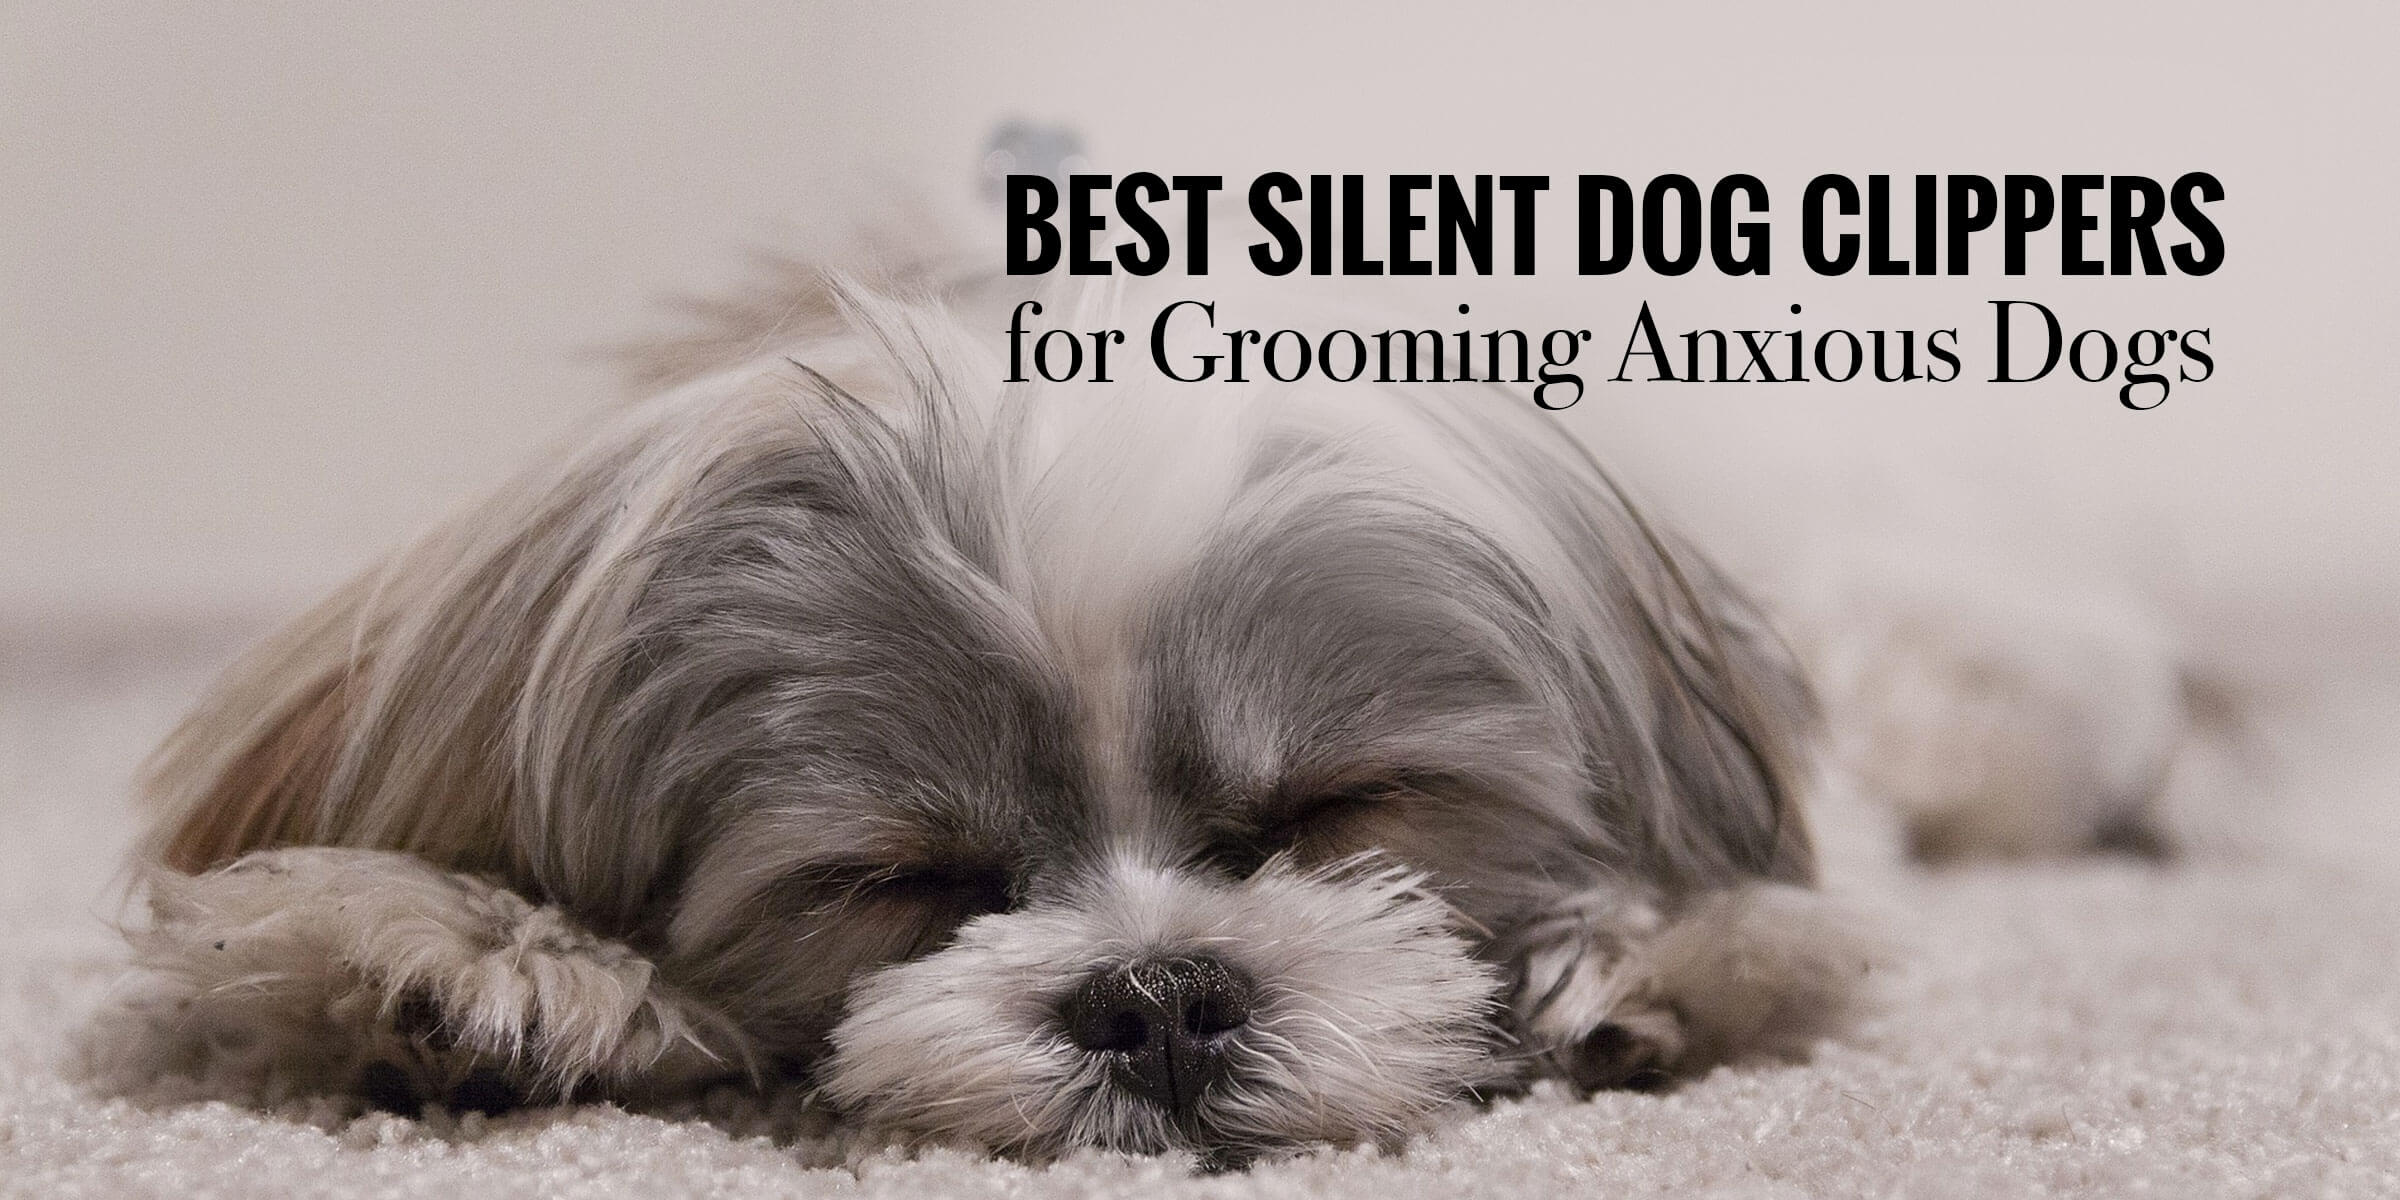 Top 12 Best Silent Dog Clippers for Grooming Anxious Dogs